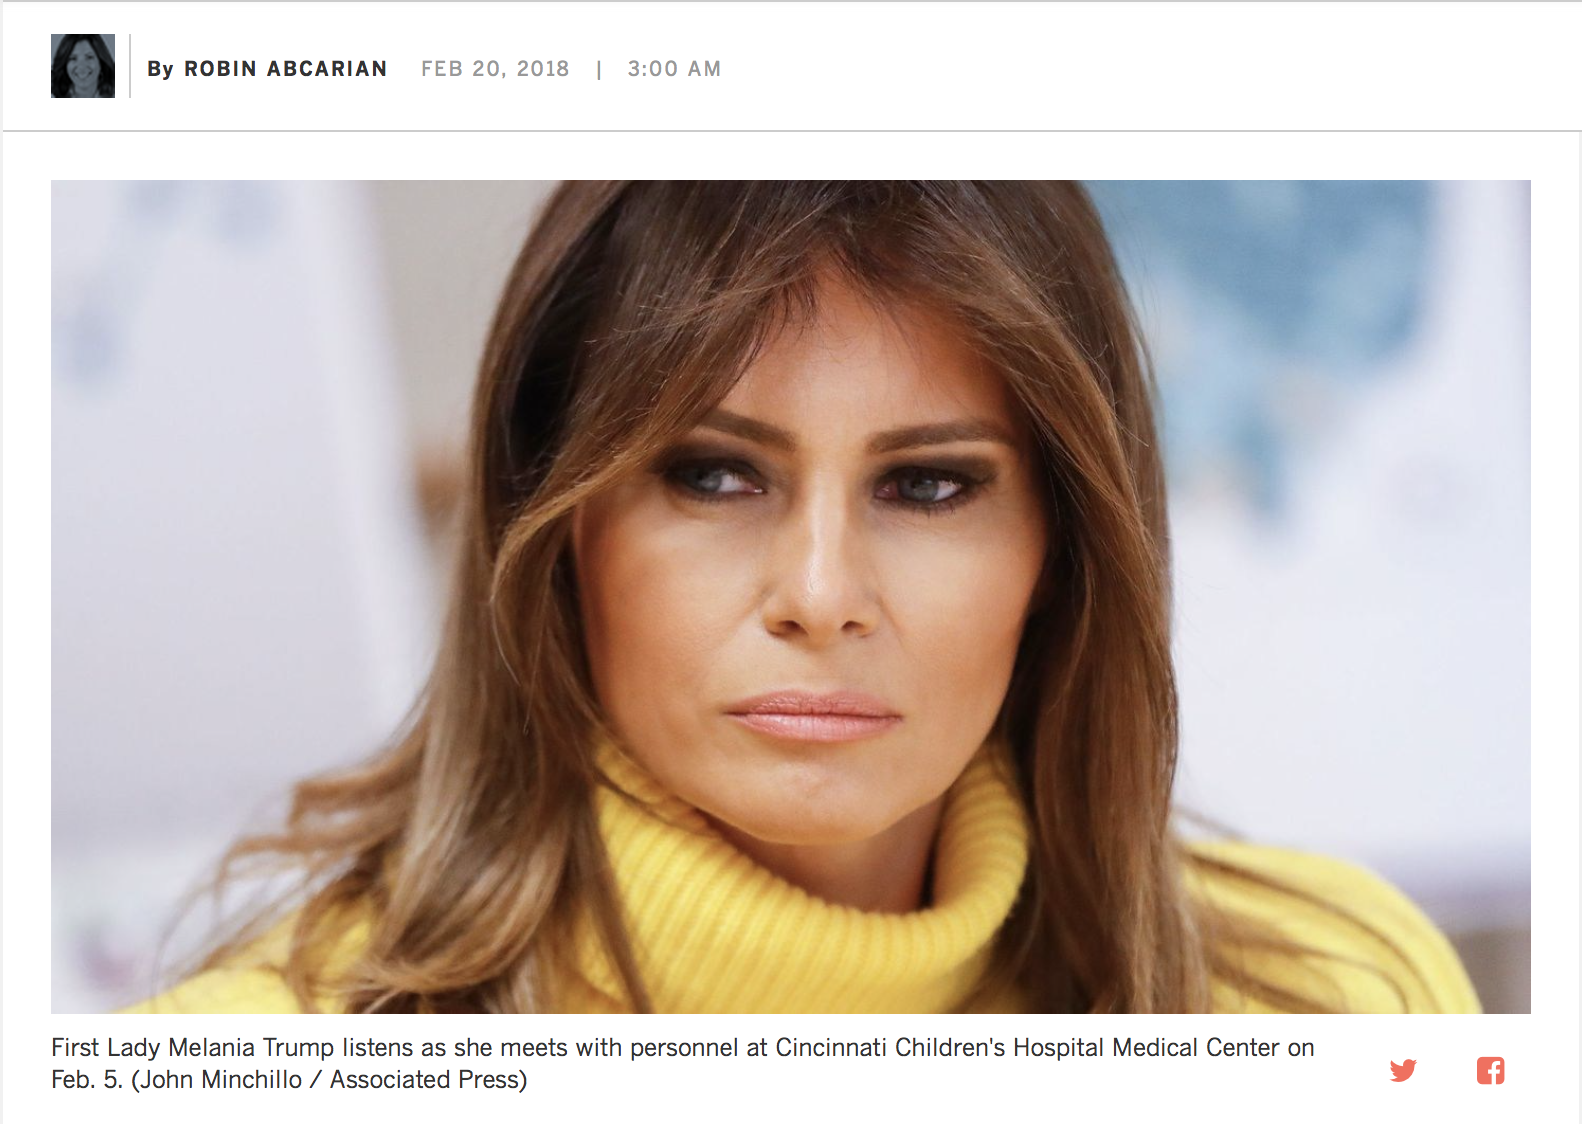 Oh, Melania...How much more humiliation can she take? -